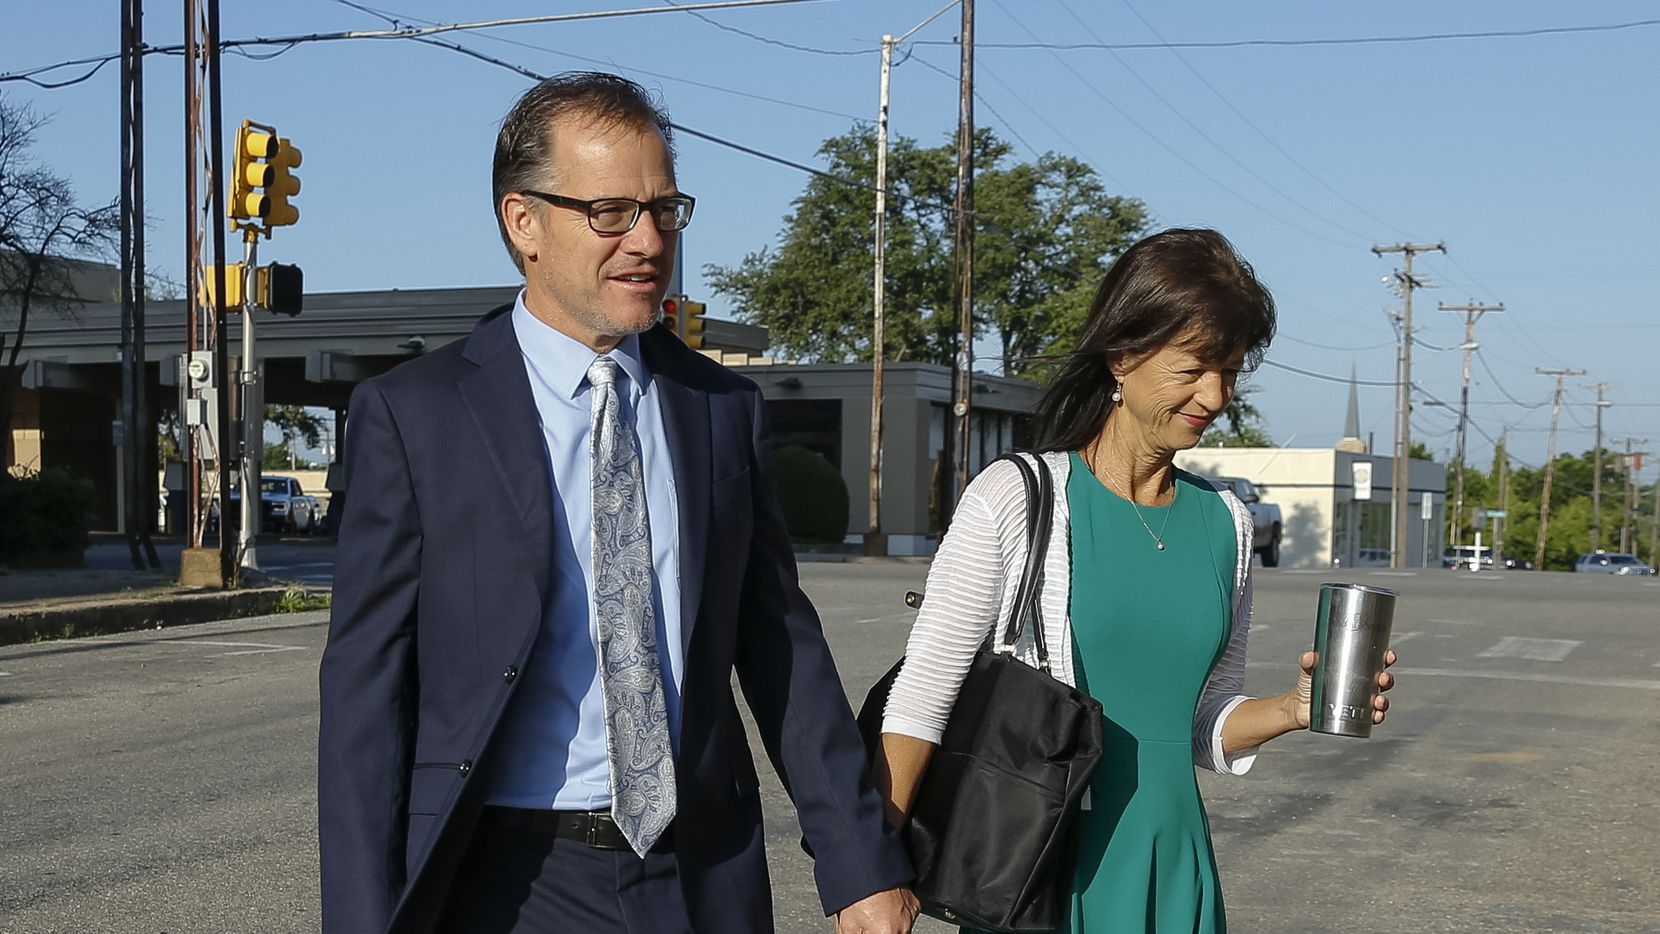 Mark Jordan and former Richardson Mayor Laura Jordan enter the Paul Brown Federal Building United States Courthouse on Friday, July 23, 2021, in Sherman. The Jordans are on trial for the second time for bribery after a court security officer's remark resulted in a new trial.